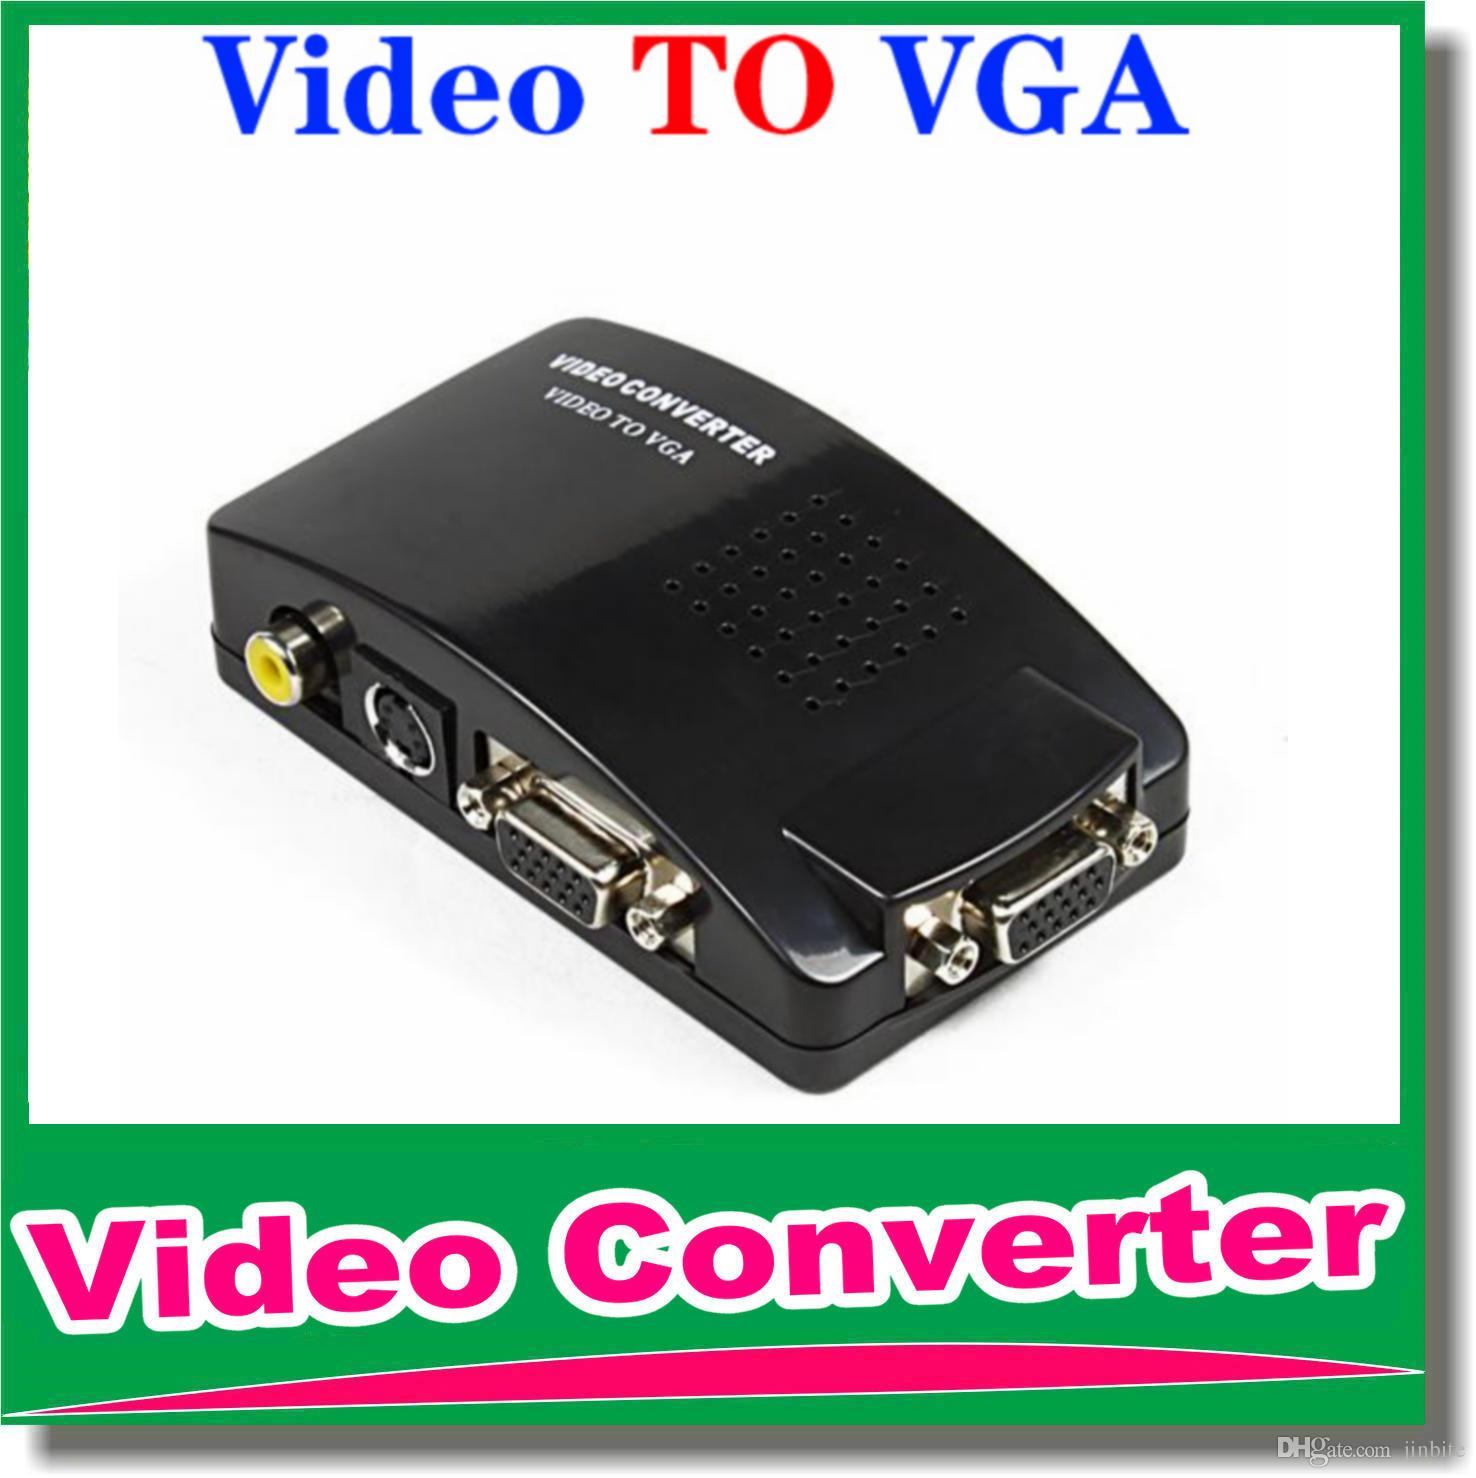 DHL Free shipping Universal PC VGA to TV AV RCA Signal Adapter Converter Video Switch Box Supports NTSC PAL for computer peripherals OM-CG8